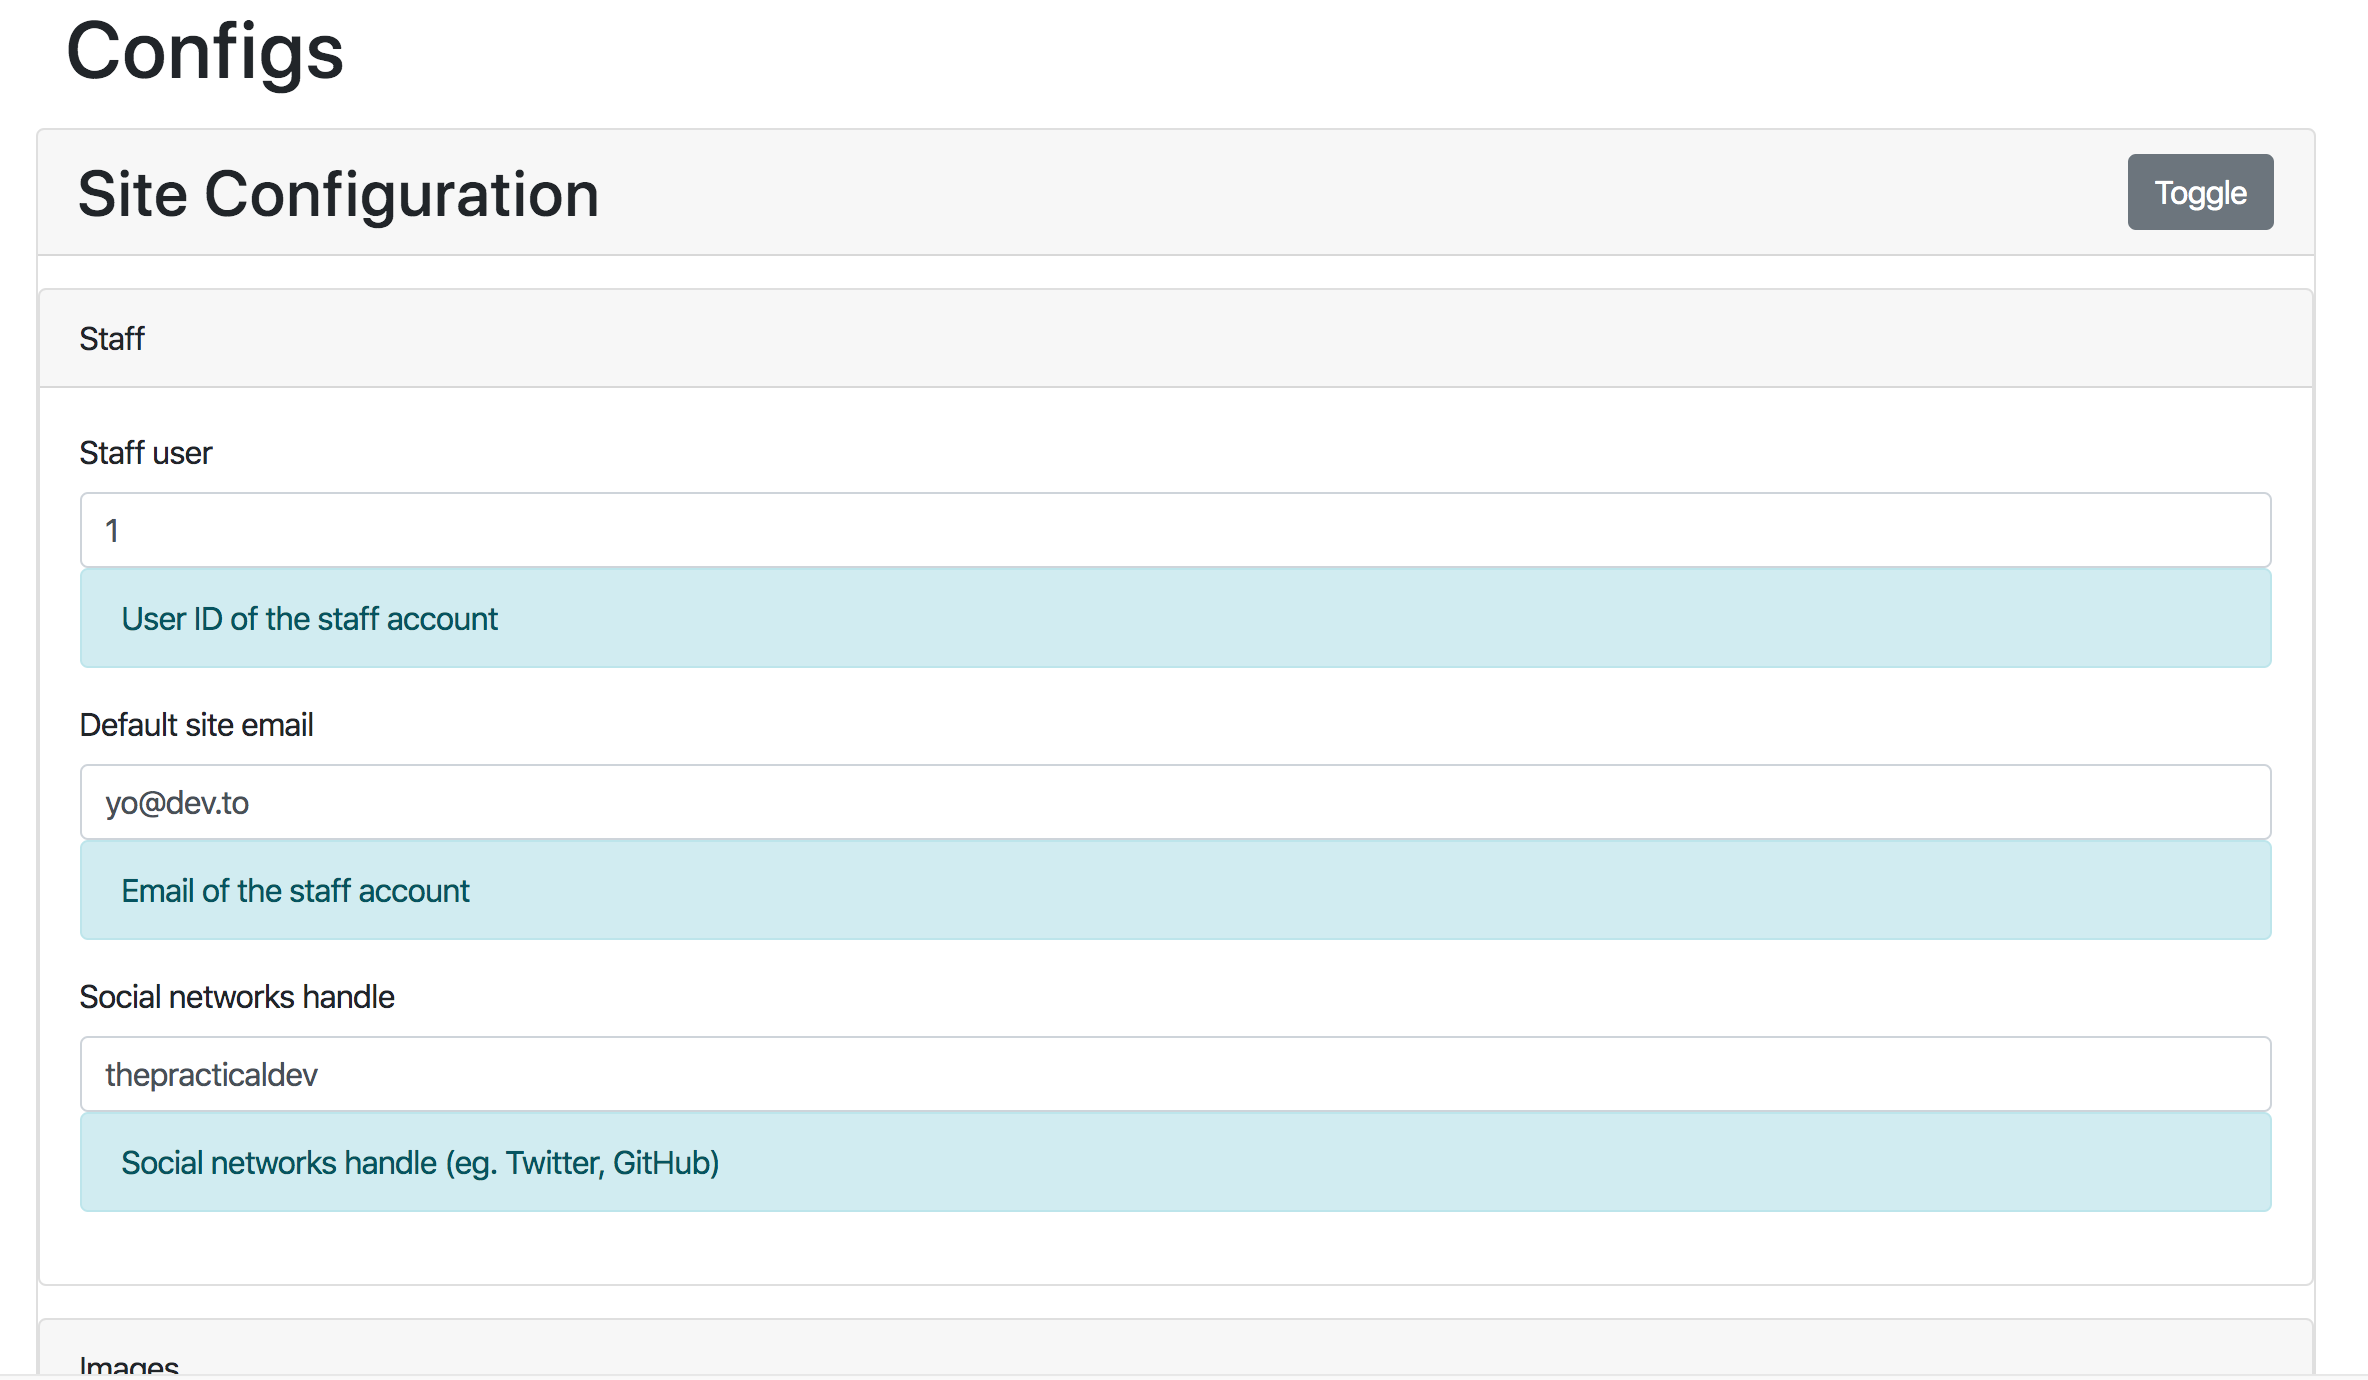 Screenshot of site configuration admin interface